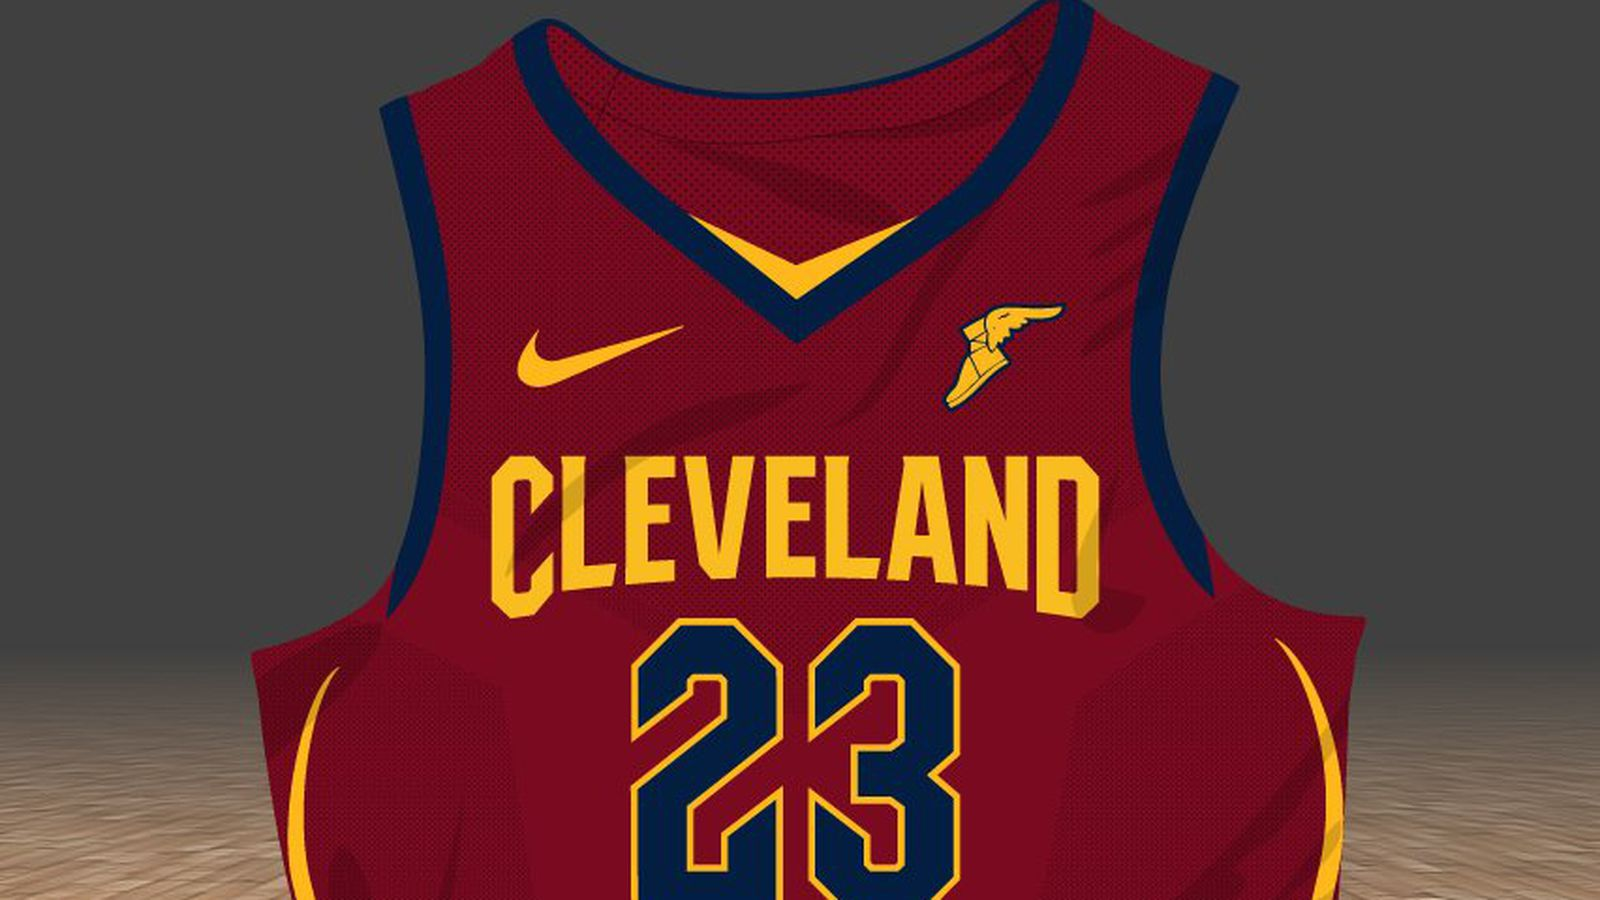 info for 090df d469e Here's a first look at the Cavs' new jerseys - Fear The Sword